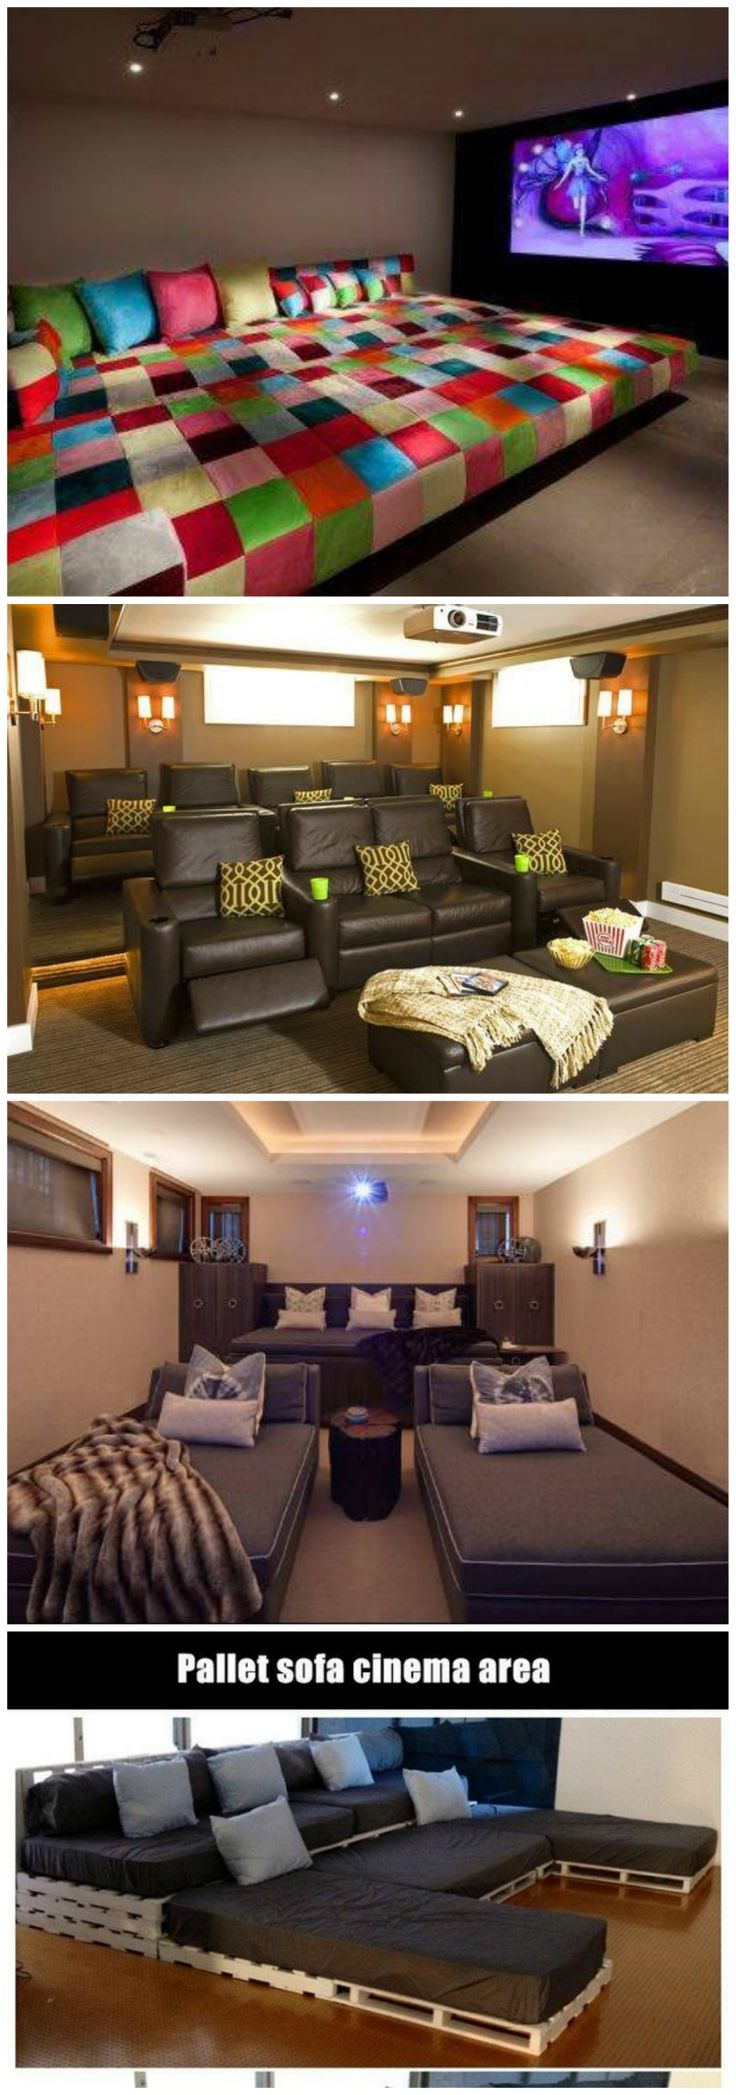 Elite home theater seating cuddle couch - Home Movie Theater Ideas